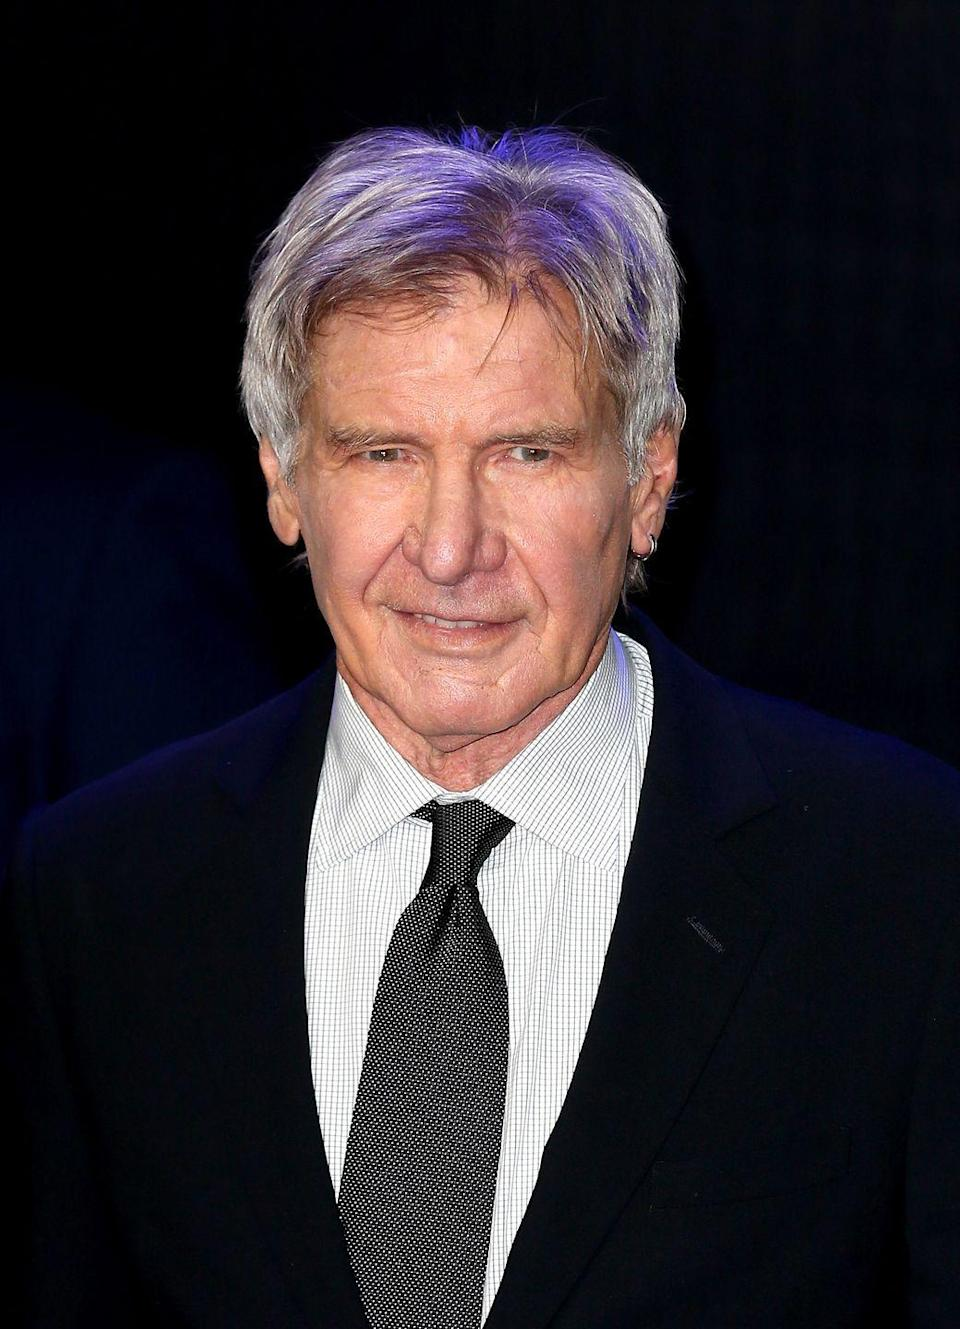 "<p>Harrison Ford had been playing Han Solo for decades before the character's dramatic death in <em>Star Wars: Episode VII - The Force Awakens</em>. ""I've been arguing for <a href=""https://entertainmentweekly.tumblr.com/post/141441075127/how-do-you-feel-about-the-ending-in-the-force#notes"" rel=""nofollow noopener"" target=""_blank"" data-ylk=""slk:Han Solo to die"" class=""link rapid-noclick-resp"">Han Solo to die</a> for about 30 years, not because I was tired of him or because he's boring, but his sacrifice for the other characters would lend gravitas and emotional weight,"" Ford said in an online Q&A with <a href=""https://entertainmentweekly.tumblr.com/post/141441075127/how-do-you-feel-about-the-ending-in-the-force#notes"" rel=""nofollow noopener"" target=""_blank"" data-ylk=""slk:Entertainment Weekly"" class=""link rapid-noclick-resp"">Entertainment Weekly</a> in 2016. </p>"